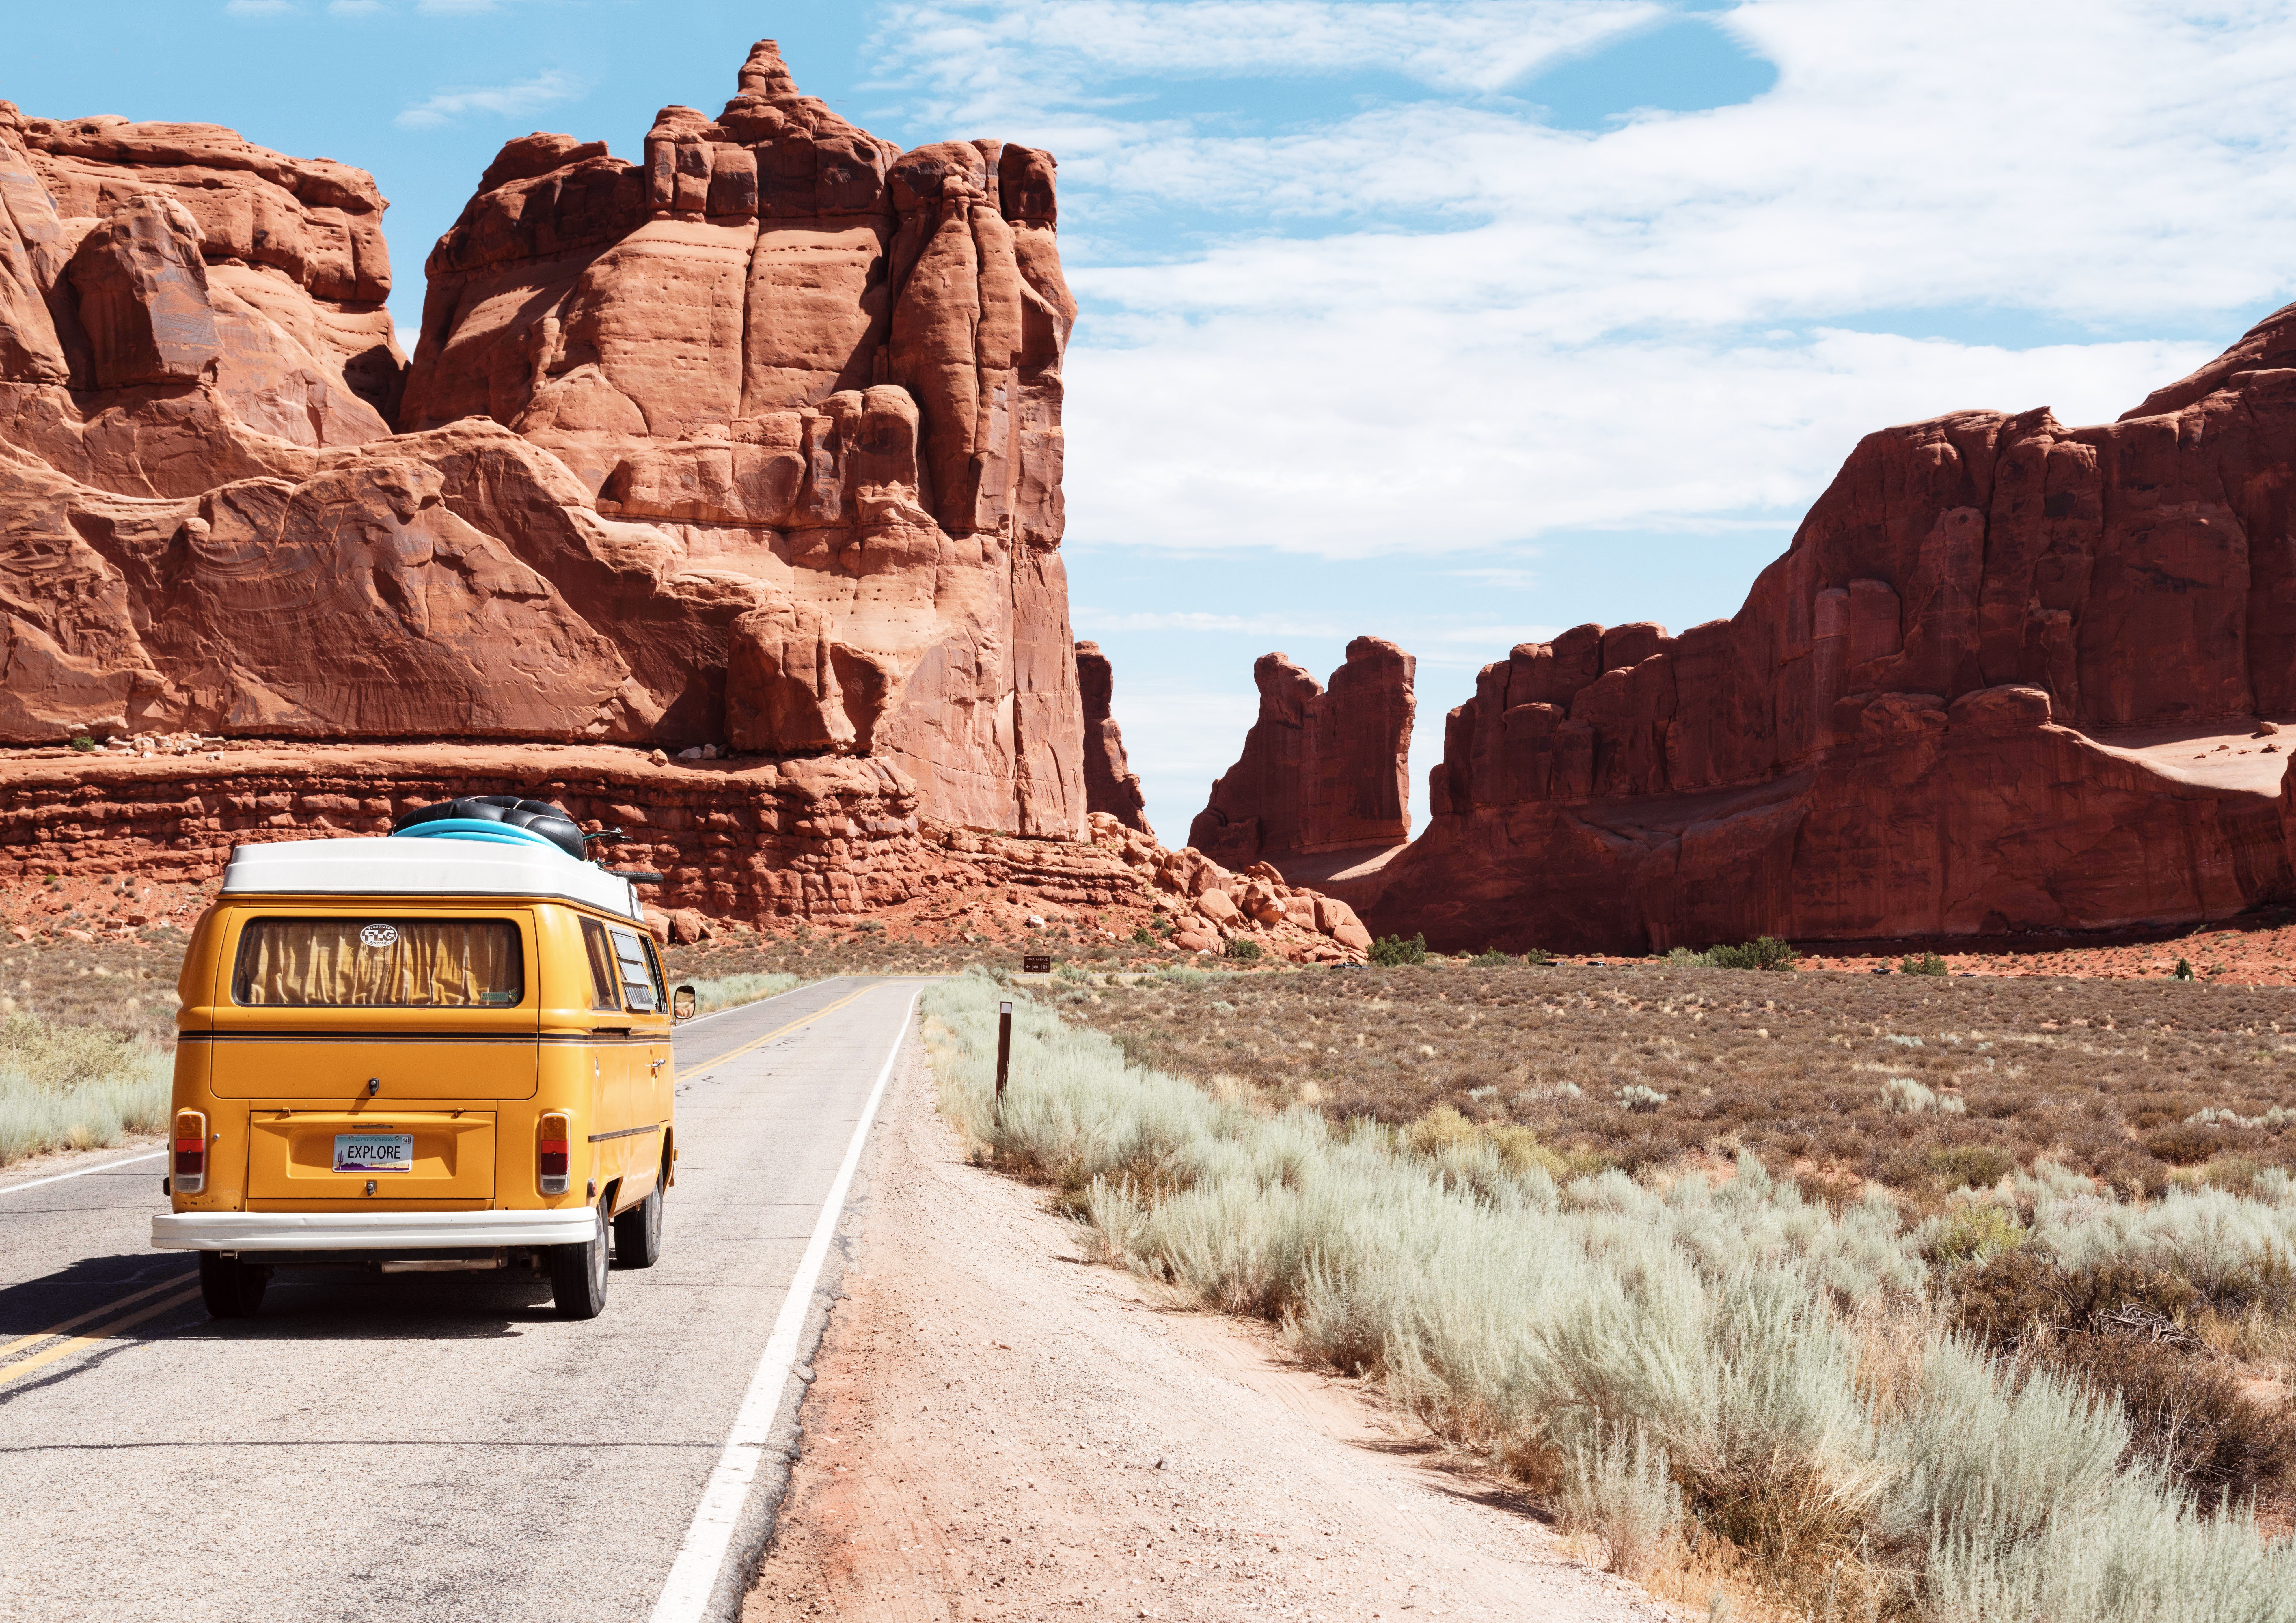 Road Trip Tips to Keep the Car Clean's featured image